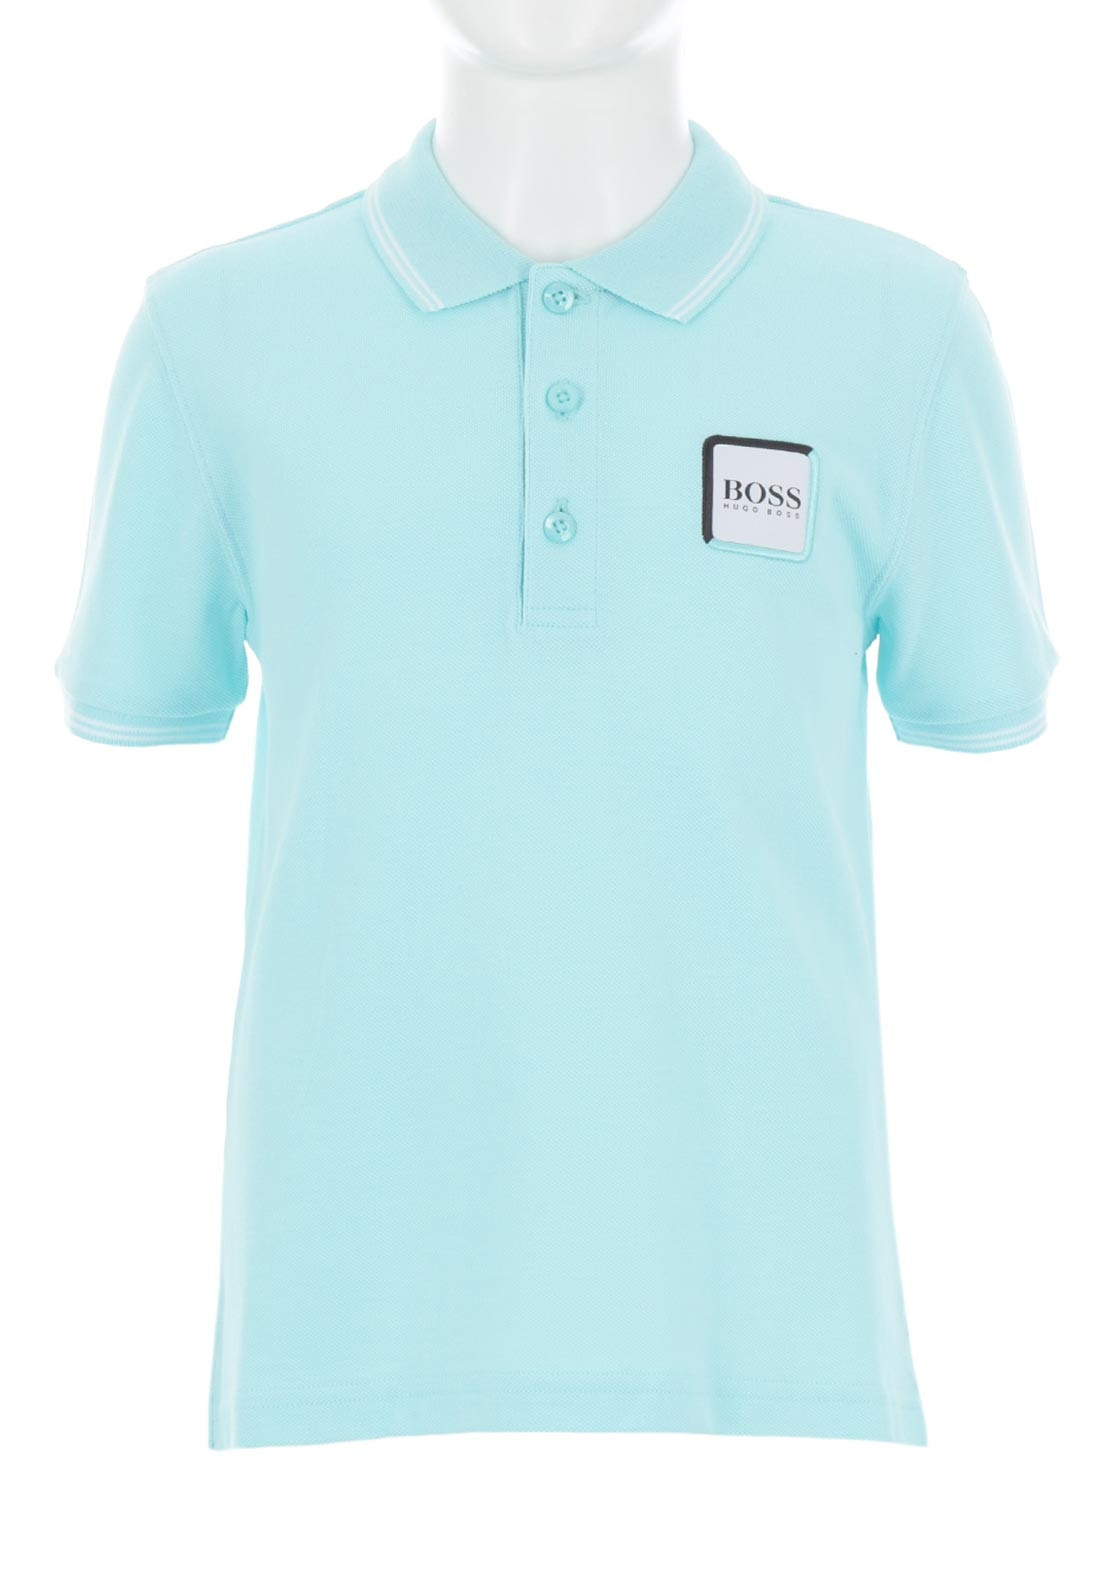 ab767ca0 Hugo Boss Boys Motif Polo Shirt, Blue. Be the first to review this product